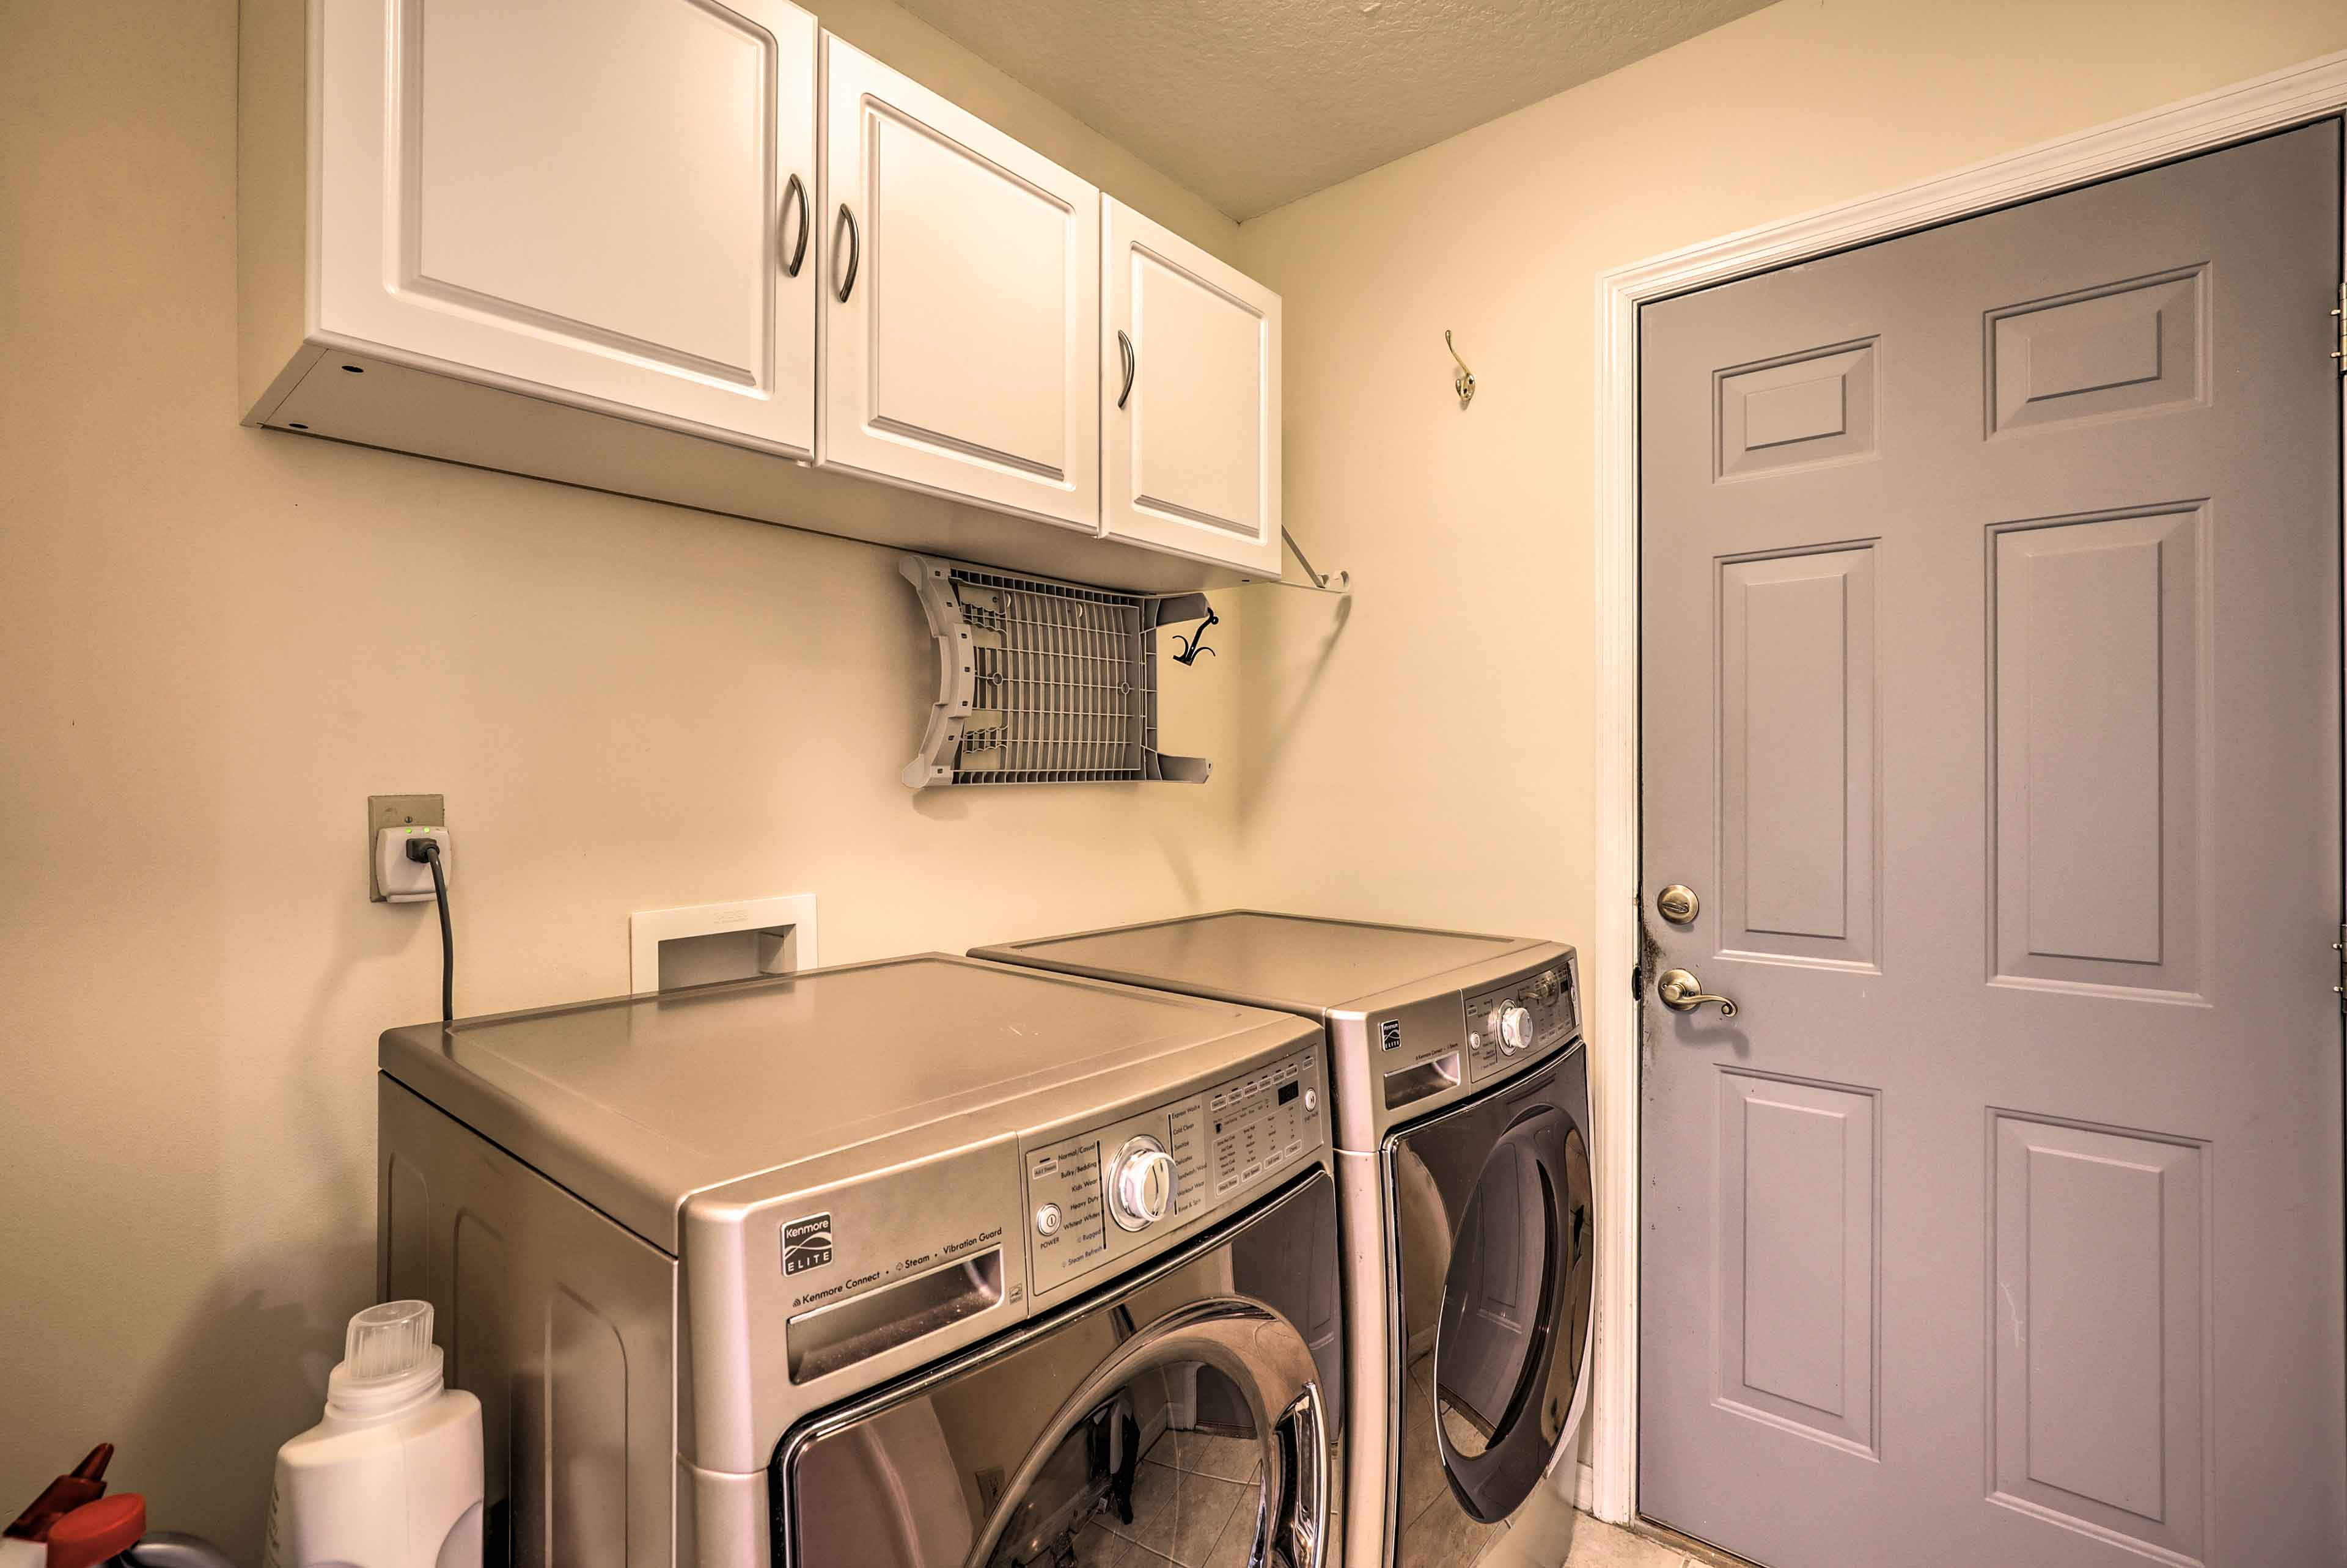 You'll love having an in-unit laundry room during your stay.